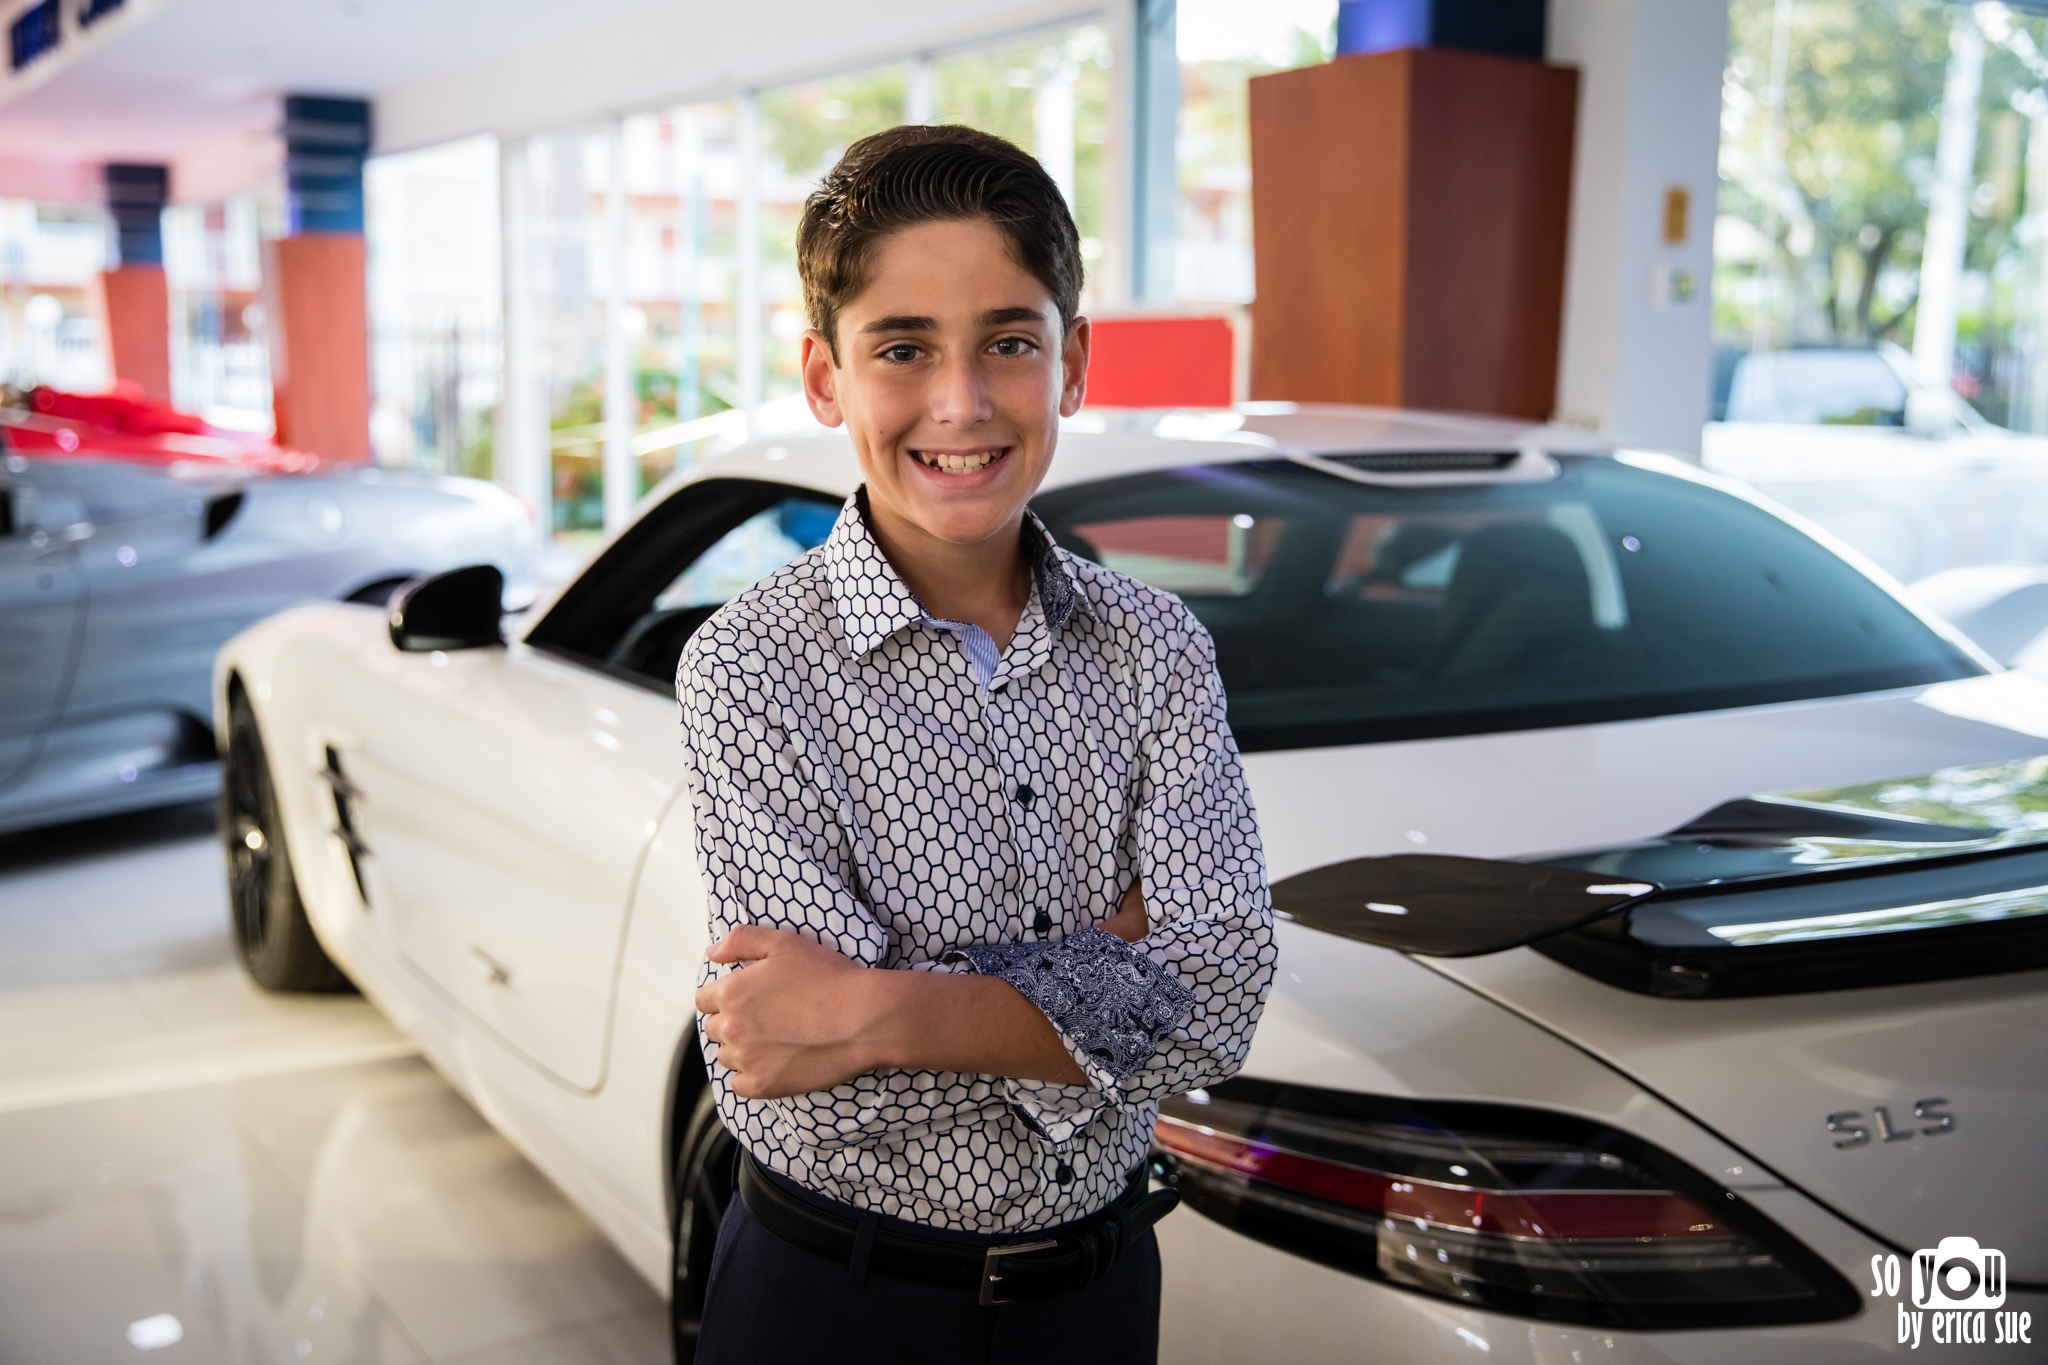 so-you-by-erica-sue-mitzvah-photographer-collection-luxury-car-ft-lauderdale-5067.jpg